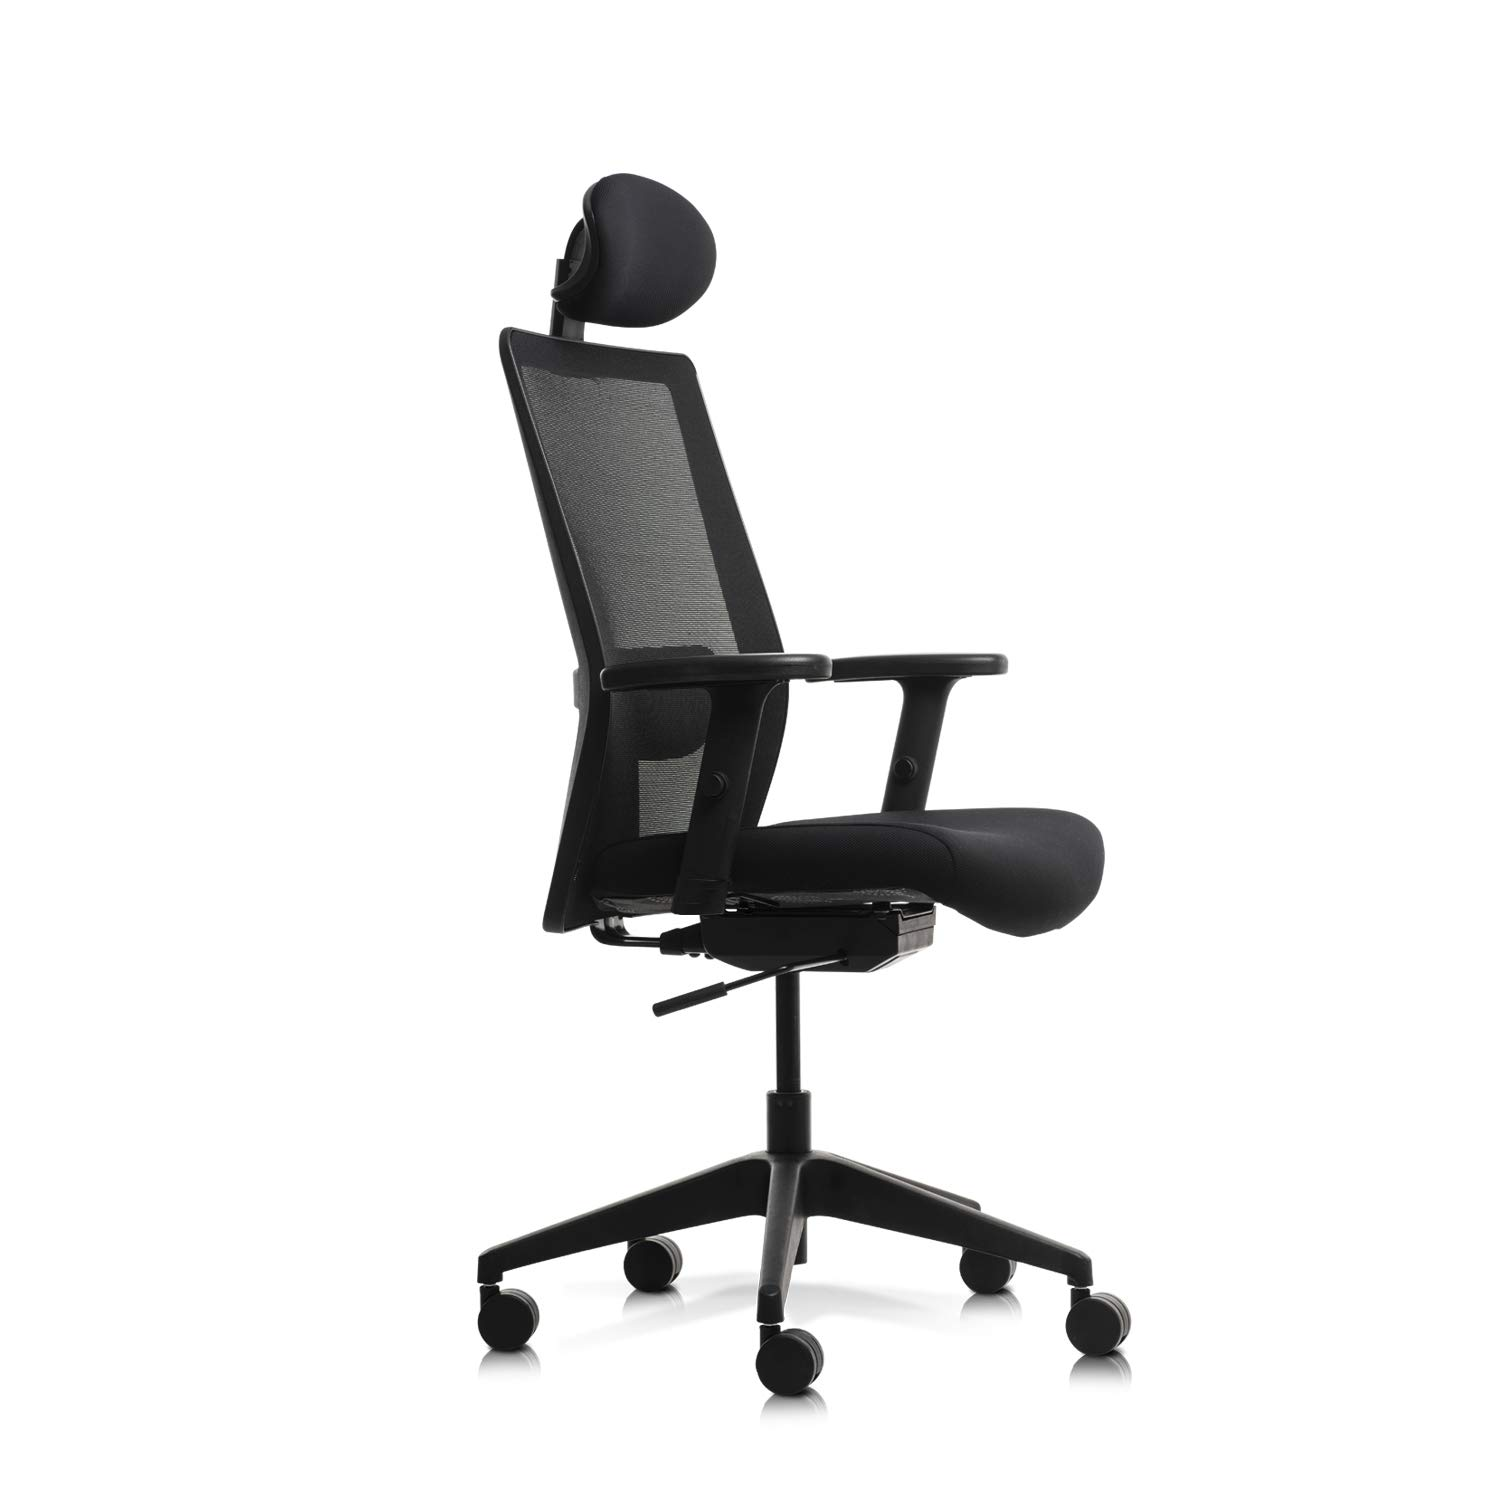 Wipro Adapt High Back Executive Office Chair review